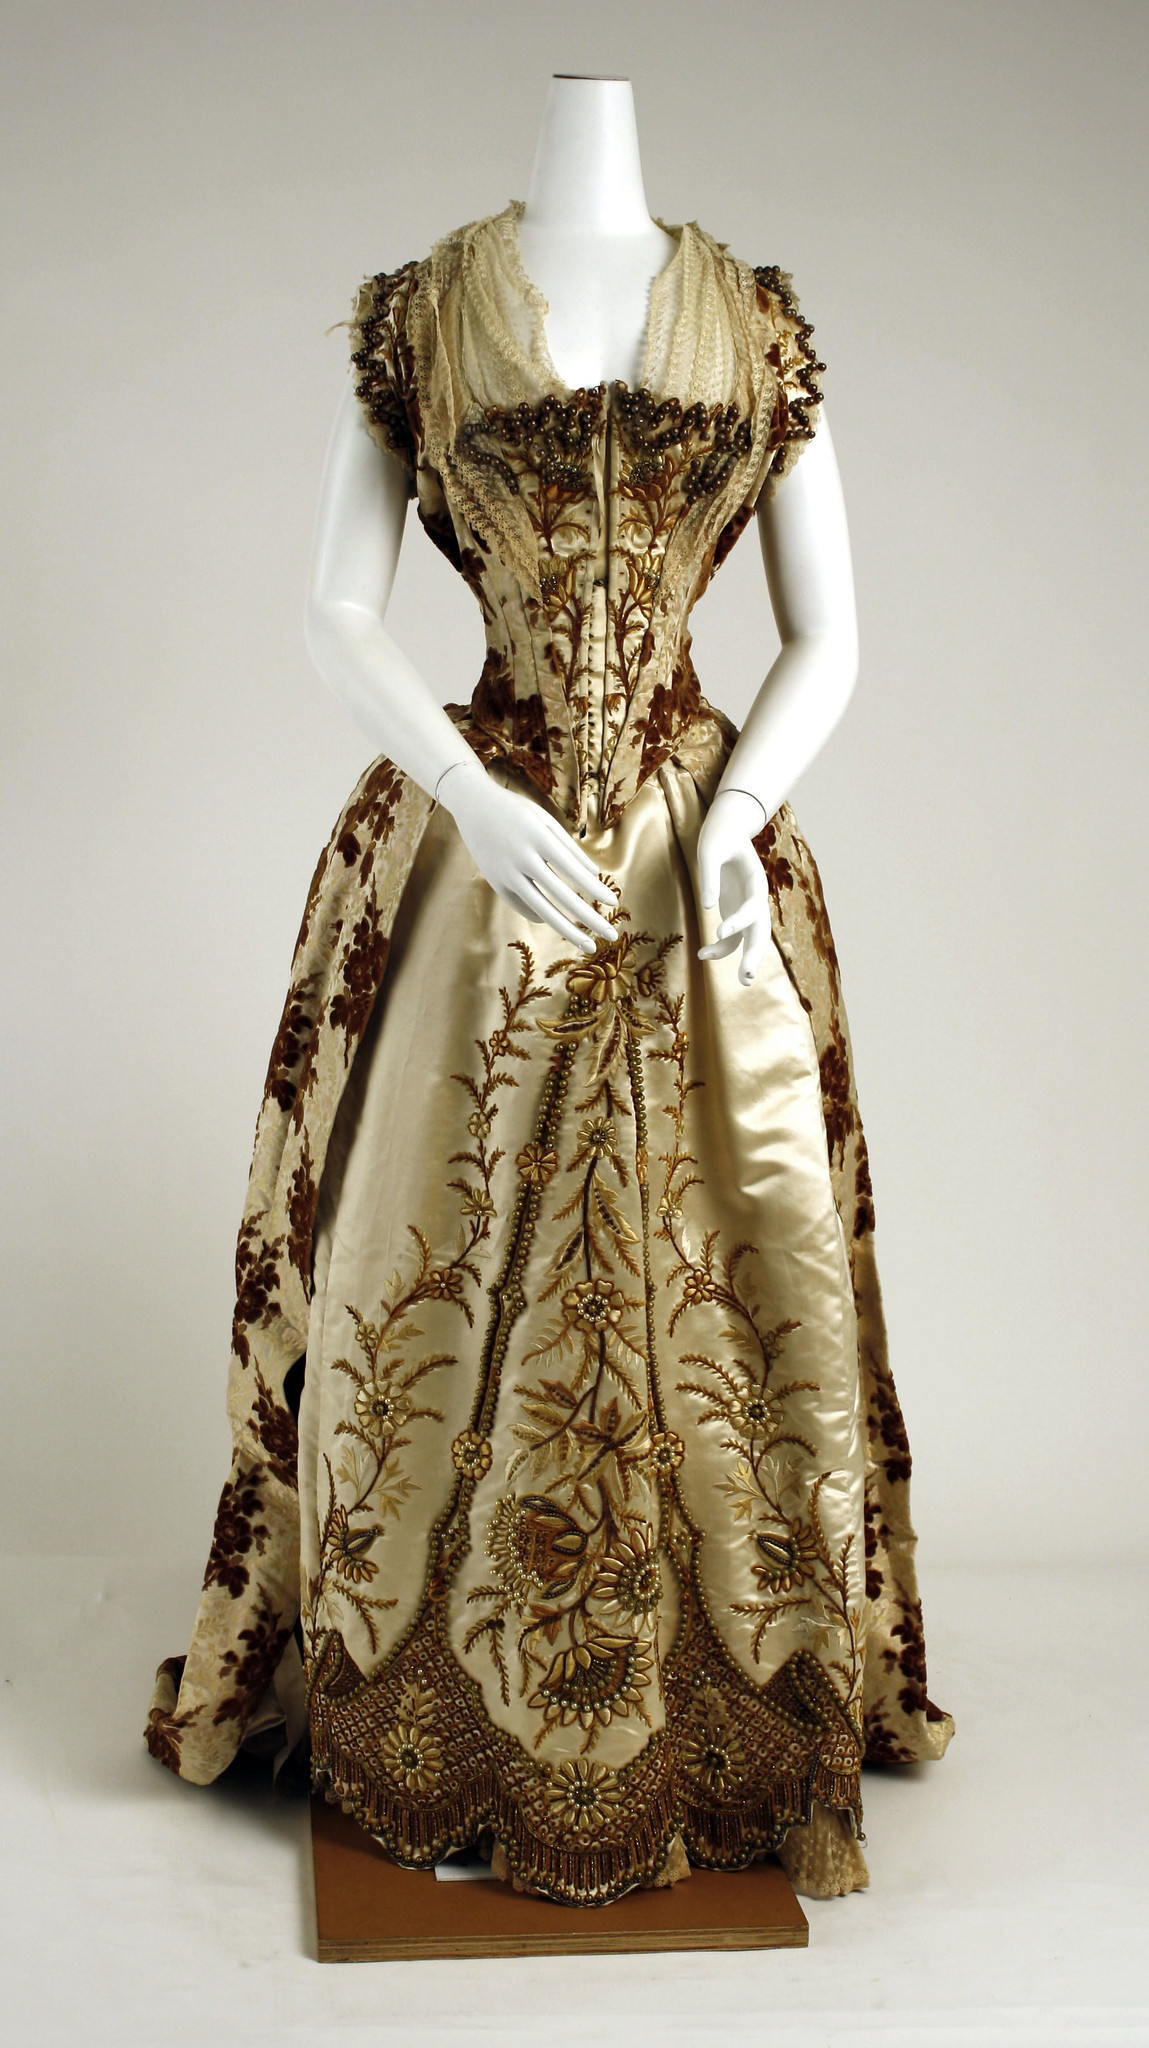 1887. French. Silk, Glass. metmuseum